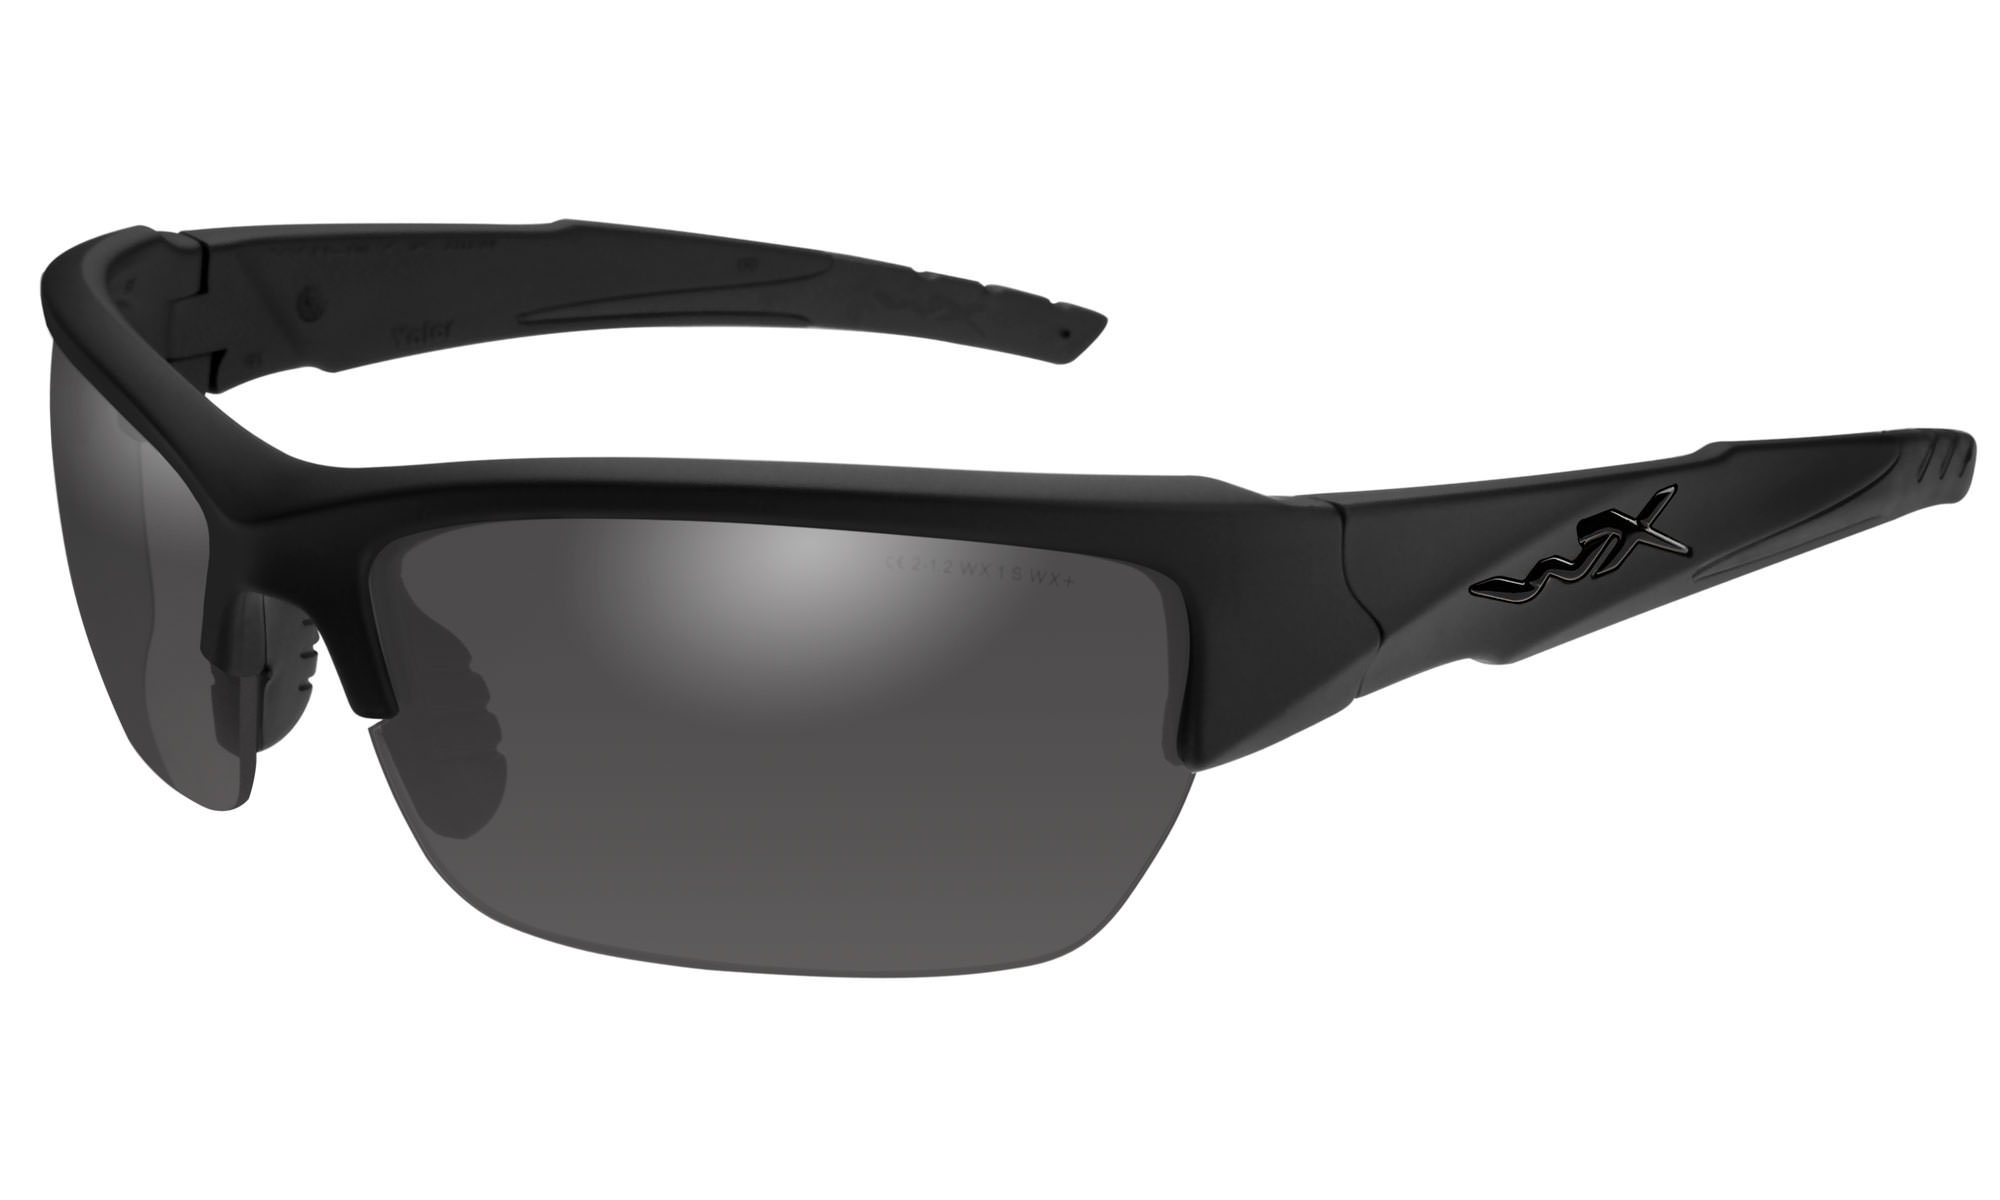 75bcd598e10e Wiley-X WX Valor Matte Black with Smoke Grey Lenses | Wiley X